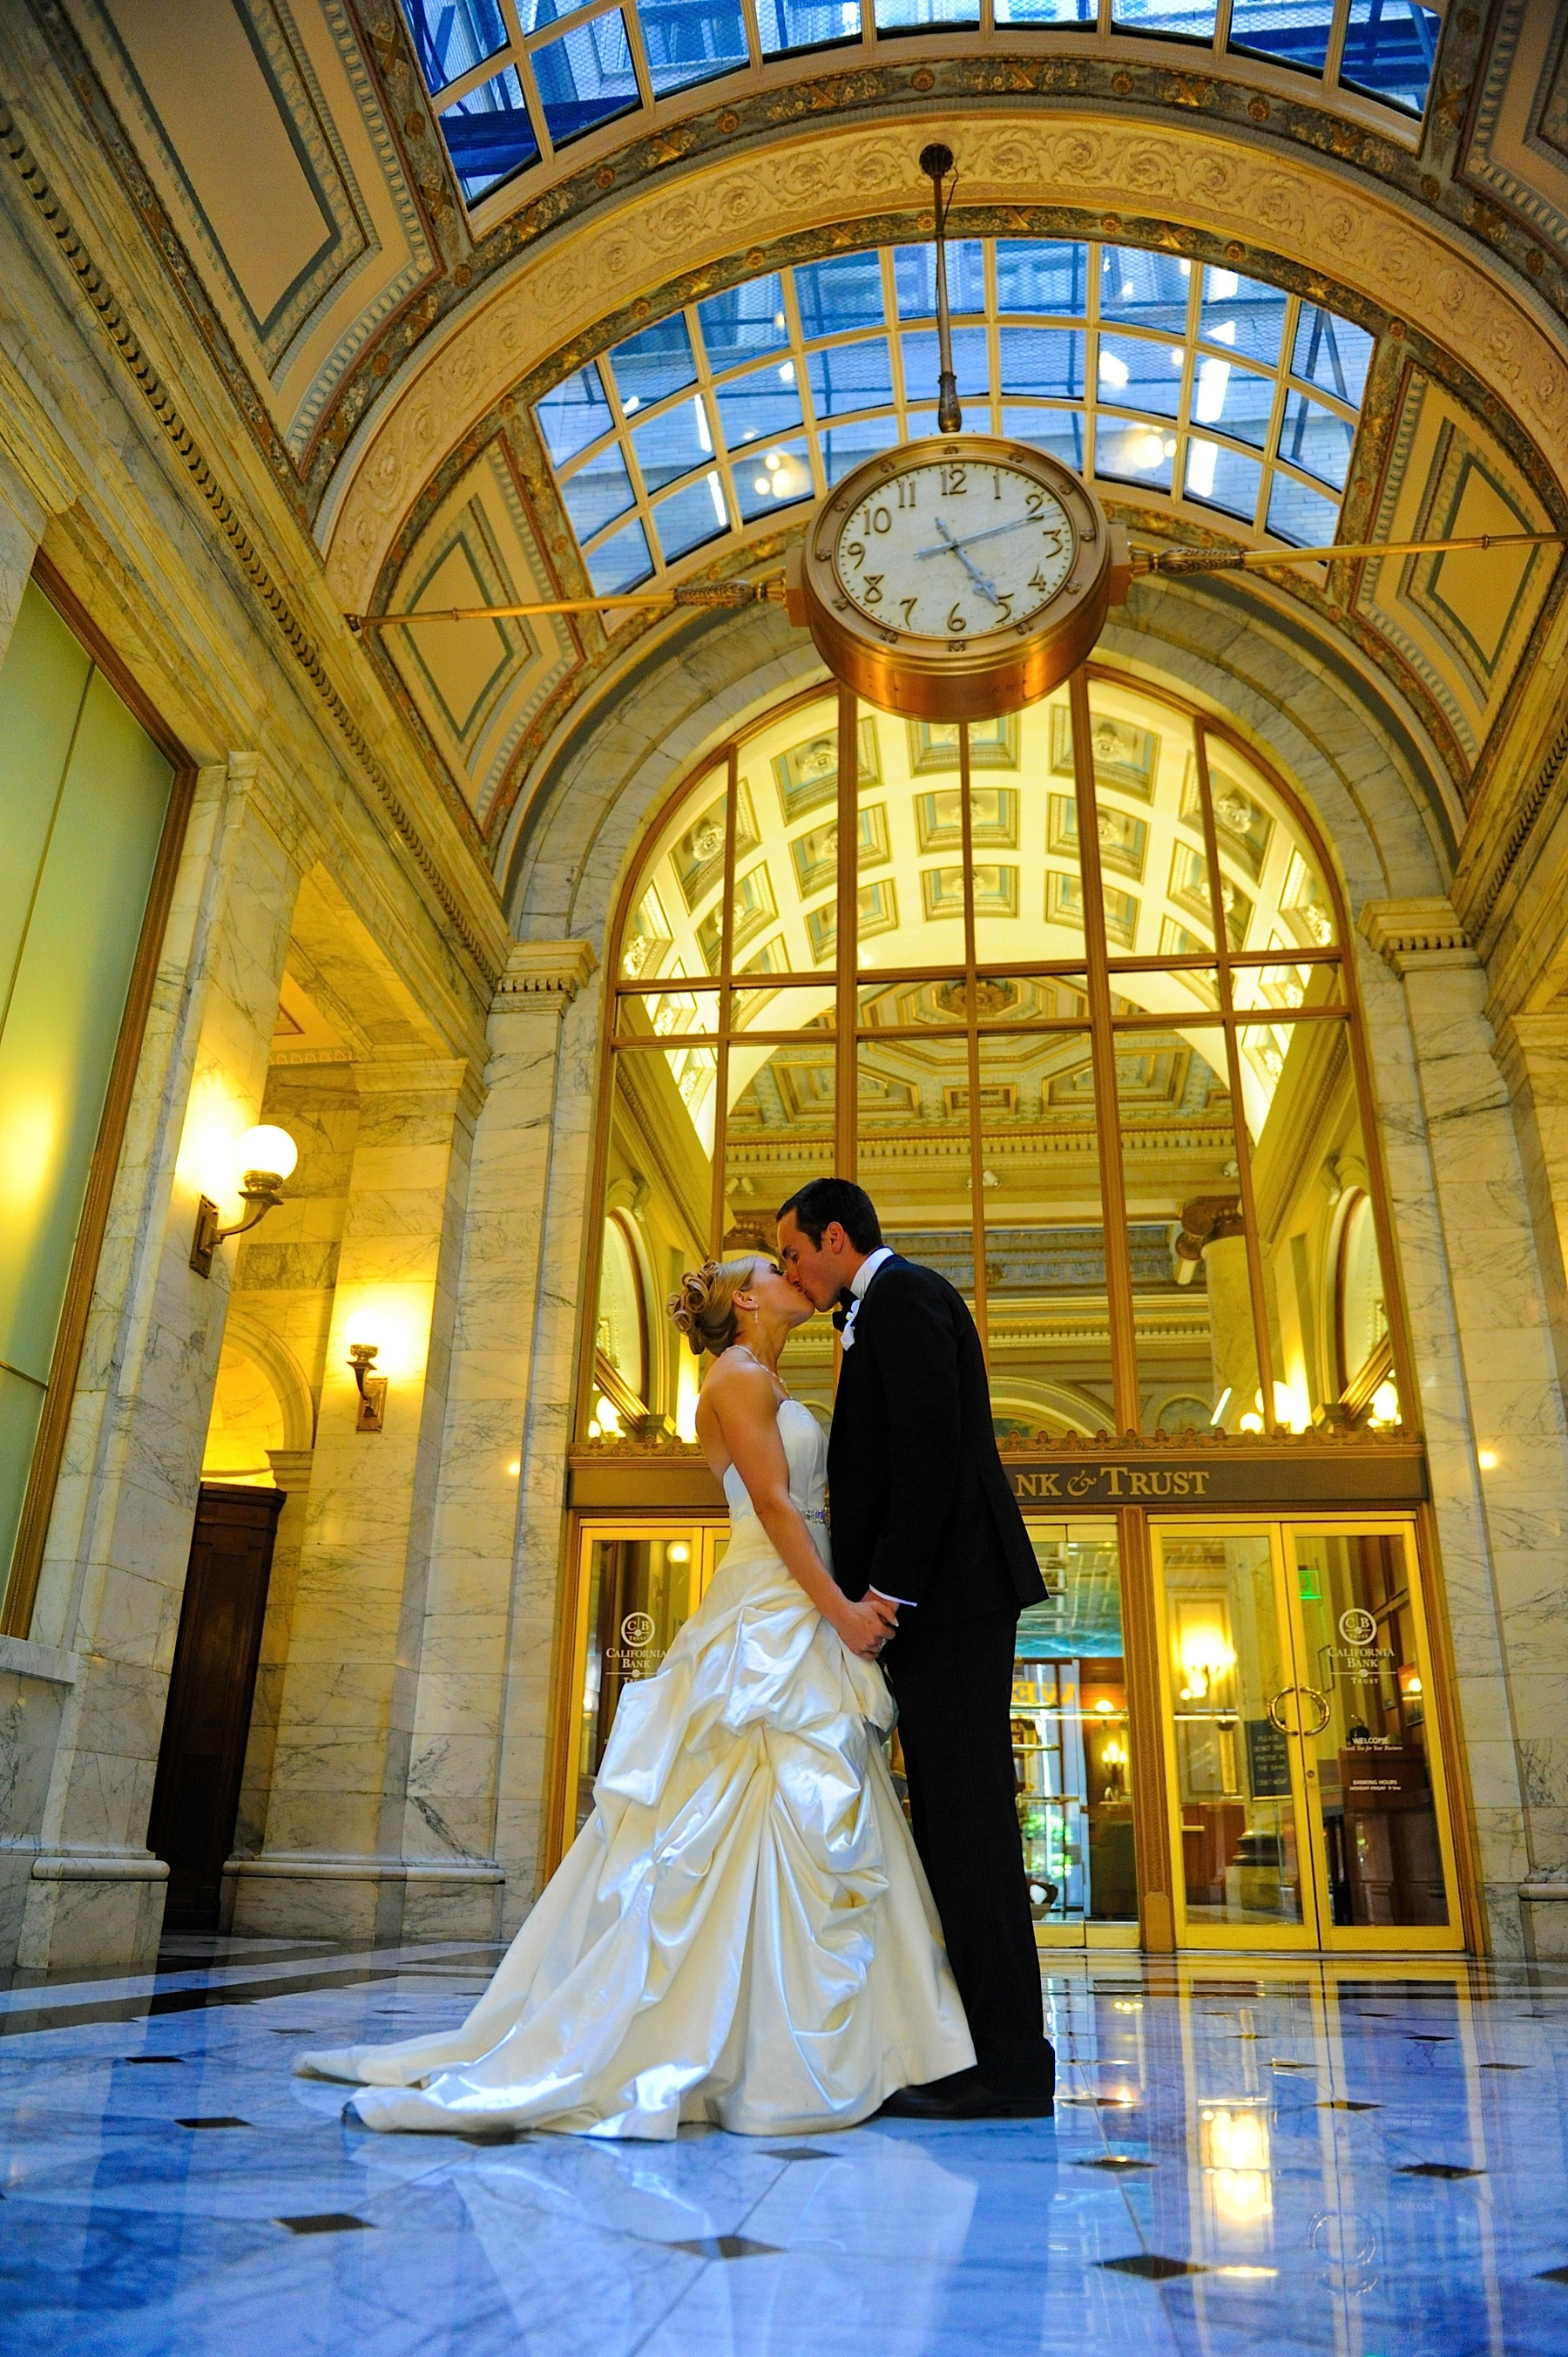 The Julia Morgan Ballroom & Saints Peter & Paul Church San Francisco Wedding Photographer.  Specializing in Destination and Elopement Photography in the Bay Area including the East Bay and the Peninsula